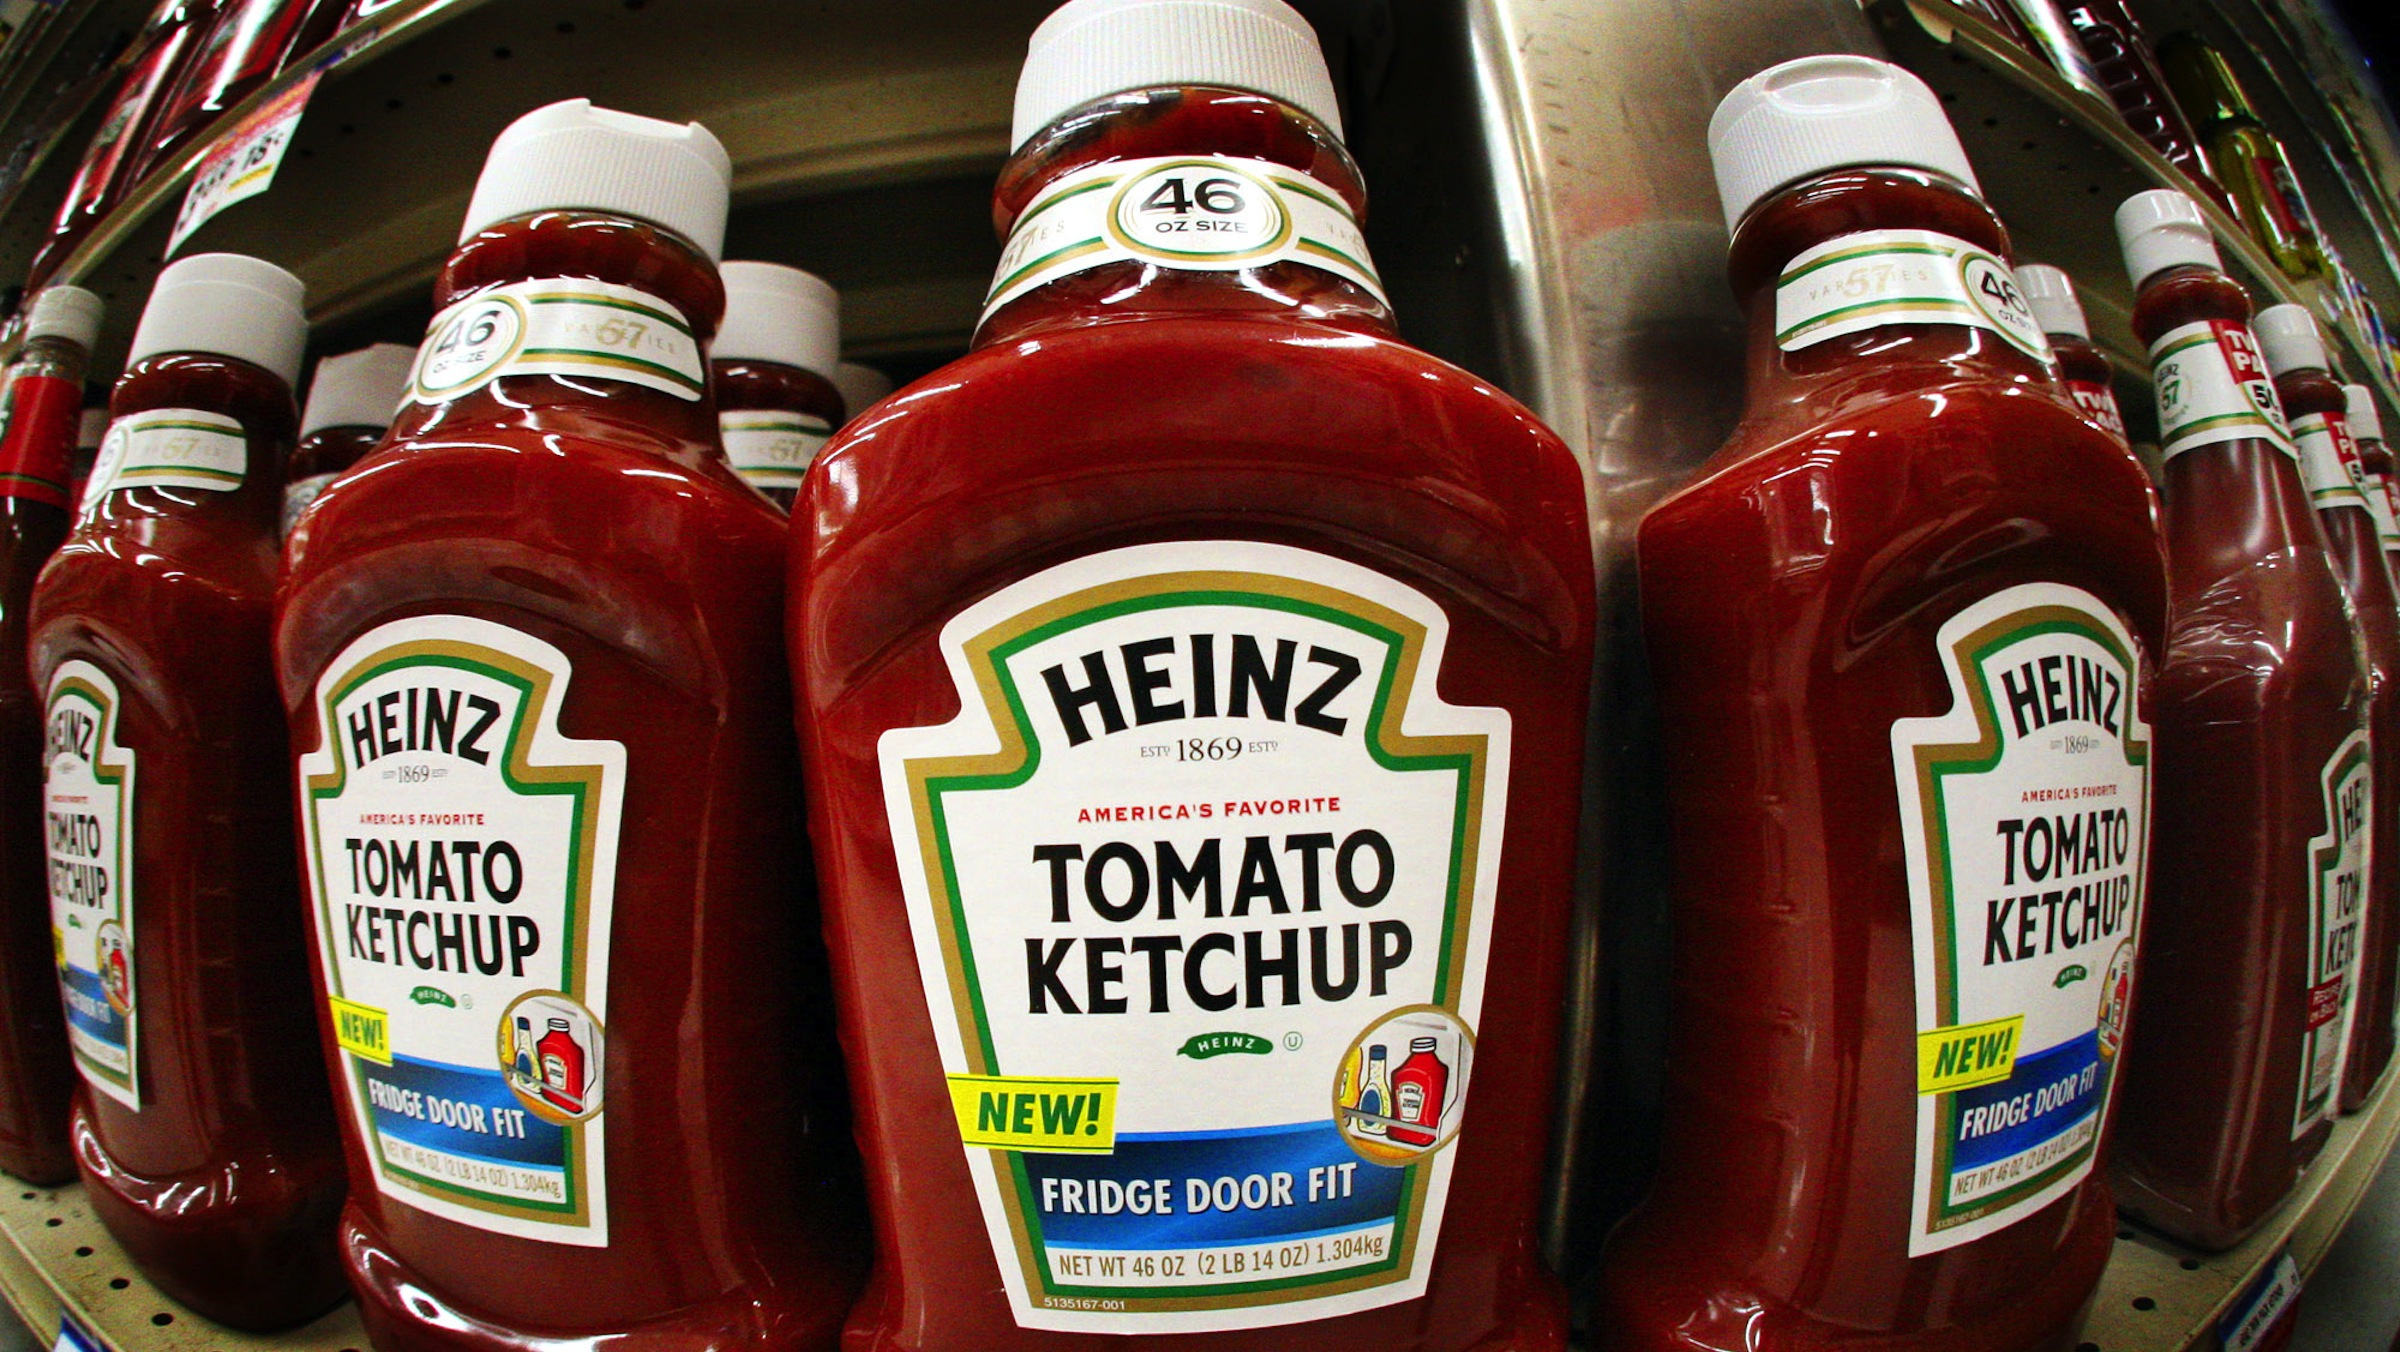 FILE - In this file photo taken, Aug. 31, 2006, using a fisheye lens, bottles of Heinz ketchup line the shelves of a West Mifflin, Pa., market. Food maker H.J. Heinz said Thursday, May 27, 2010, rising sales in emerging markets pushed its fourth-quarter net income up 9.7 percent.(AP Photo/Gene J. Puskar, file)